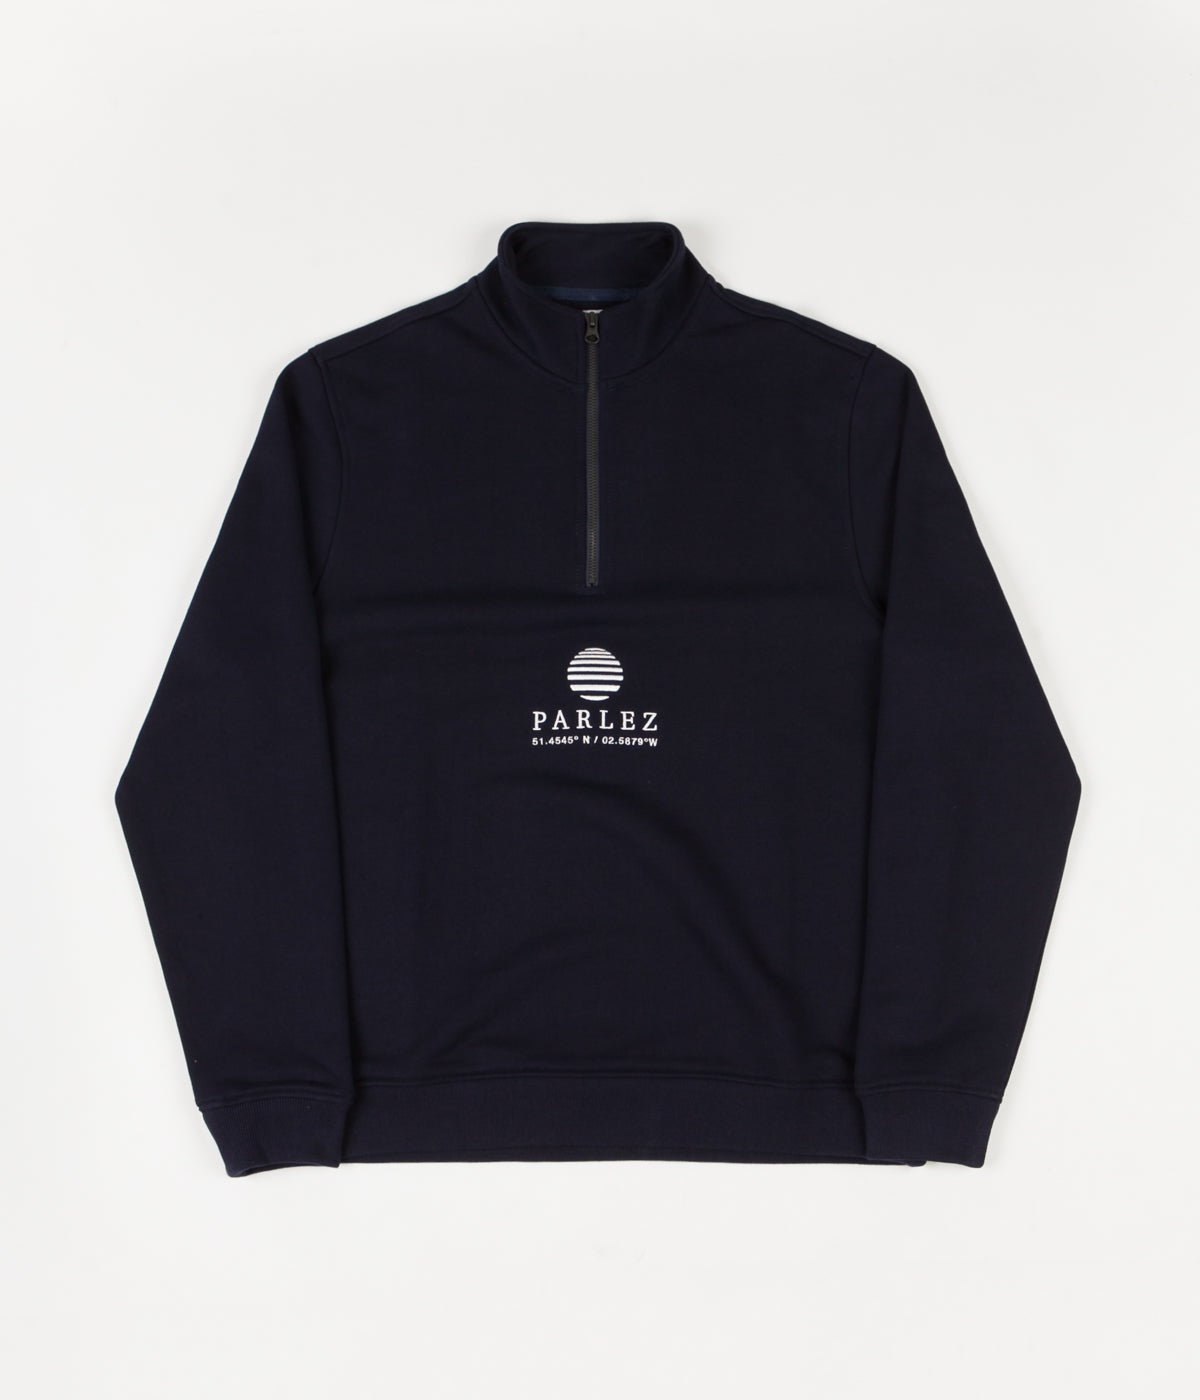 Parlez Purcel 1/4 Zip Sweatshirt - Navy